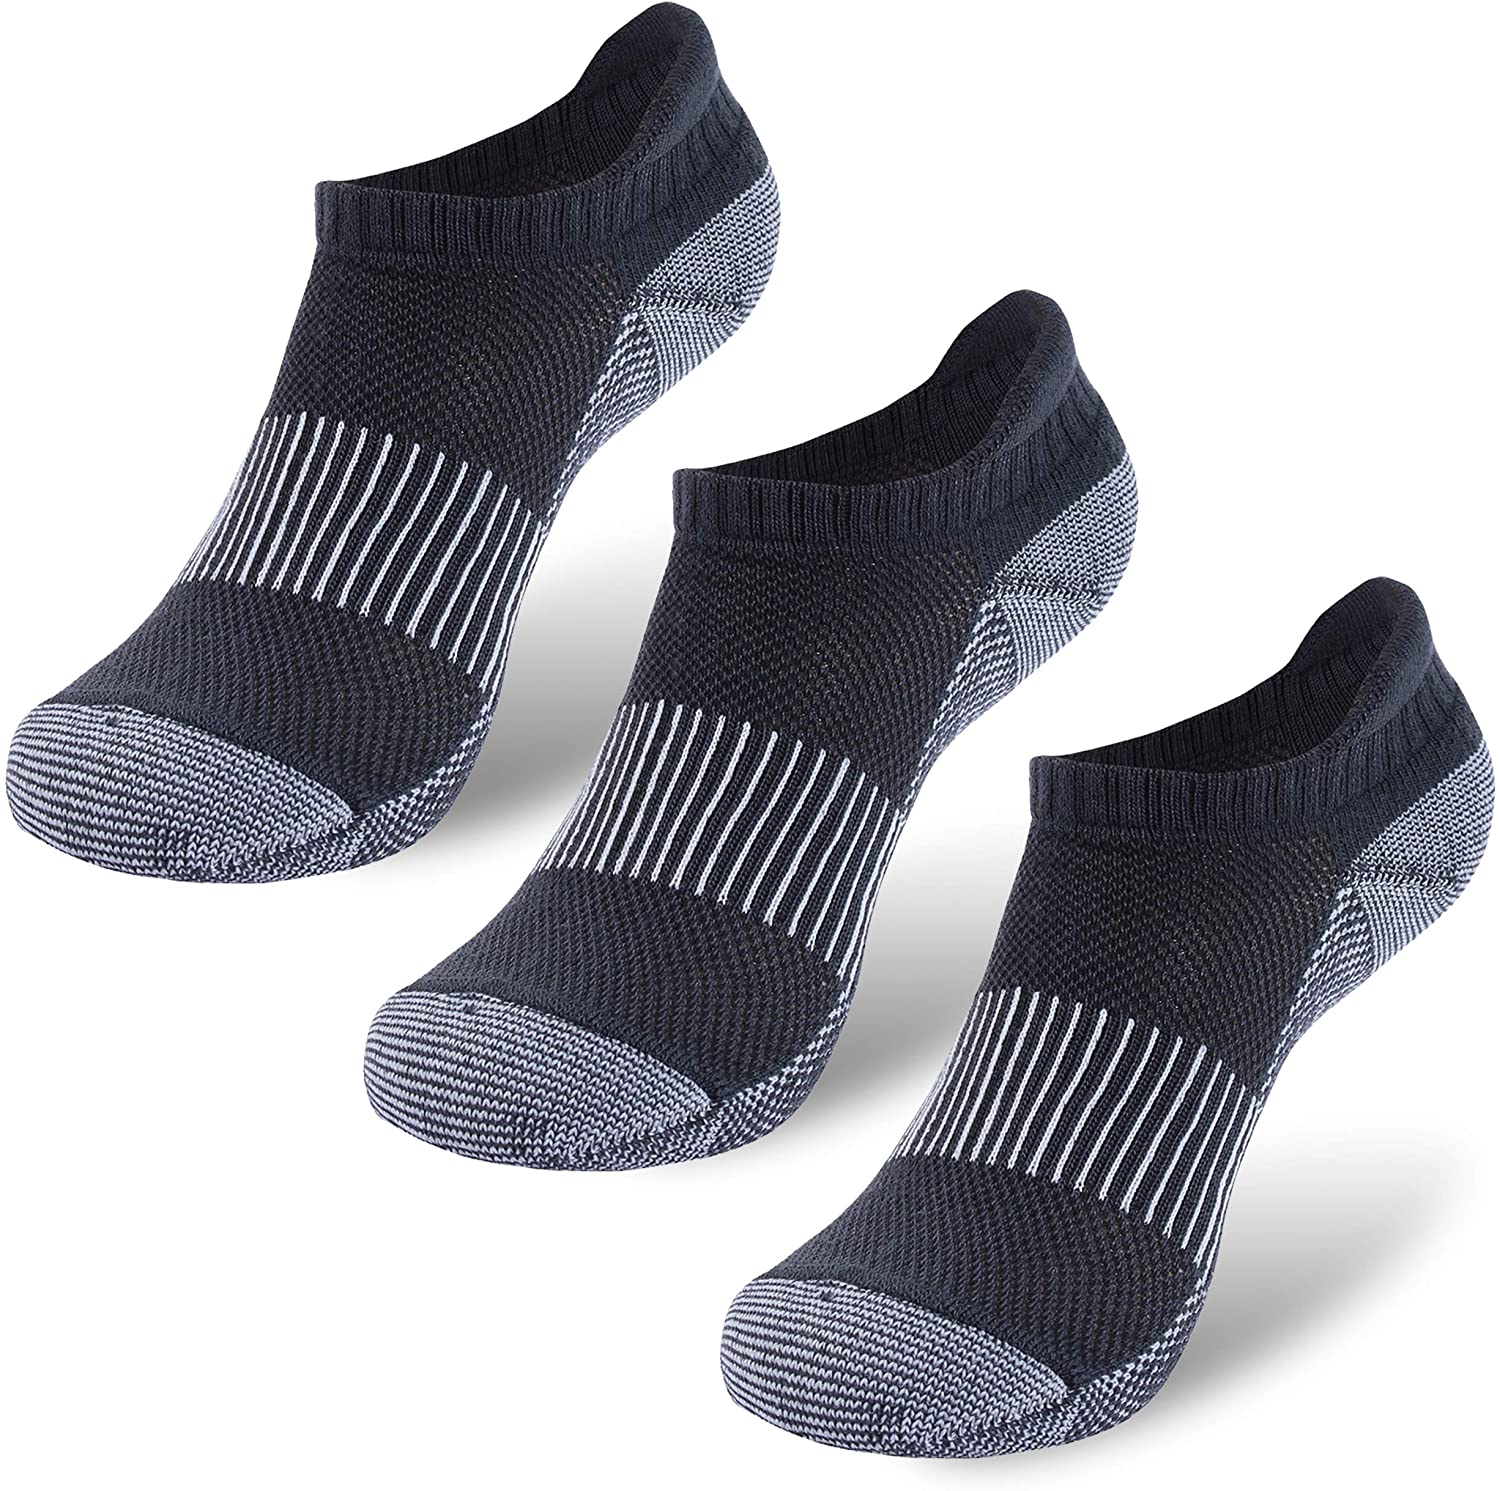 Copper Low Cut Socks Women, Three street Comfortable Moisture Wicking Ankle for Sweaty Feet Anti Slip Cushioned Sole Heel Breathable Home Running Copper Socks Fathers Day Gifts Dark Grey 3 Pairs S